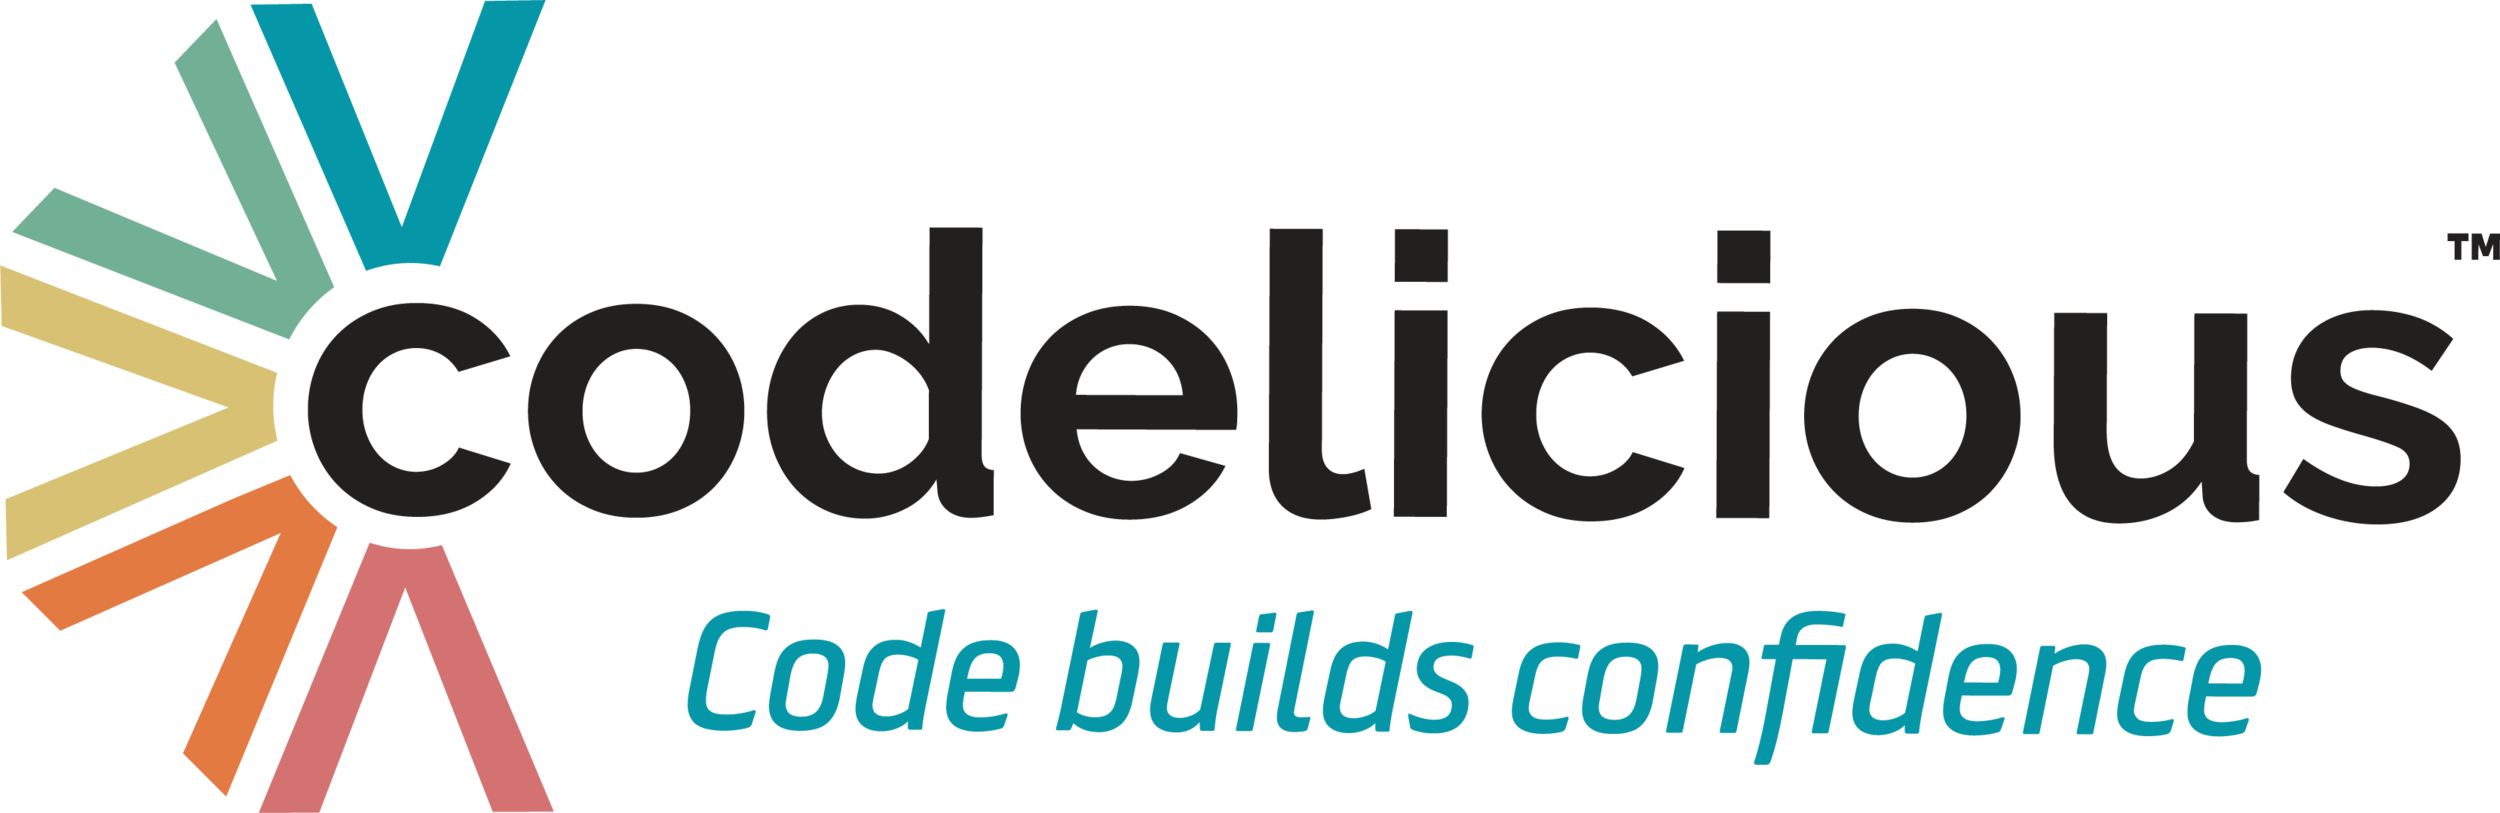 Codelicious (1).png